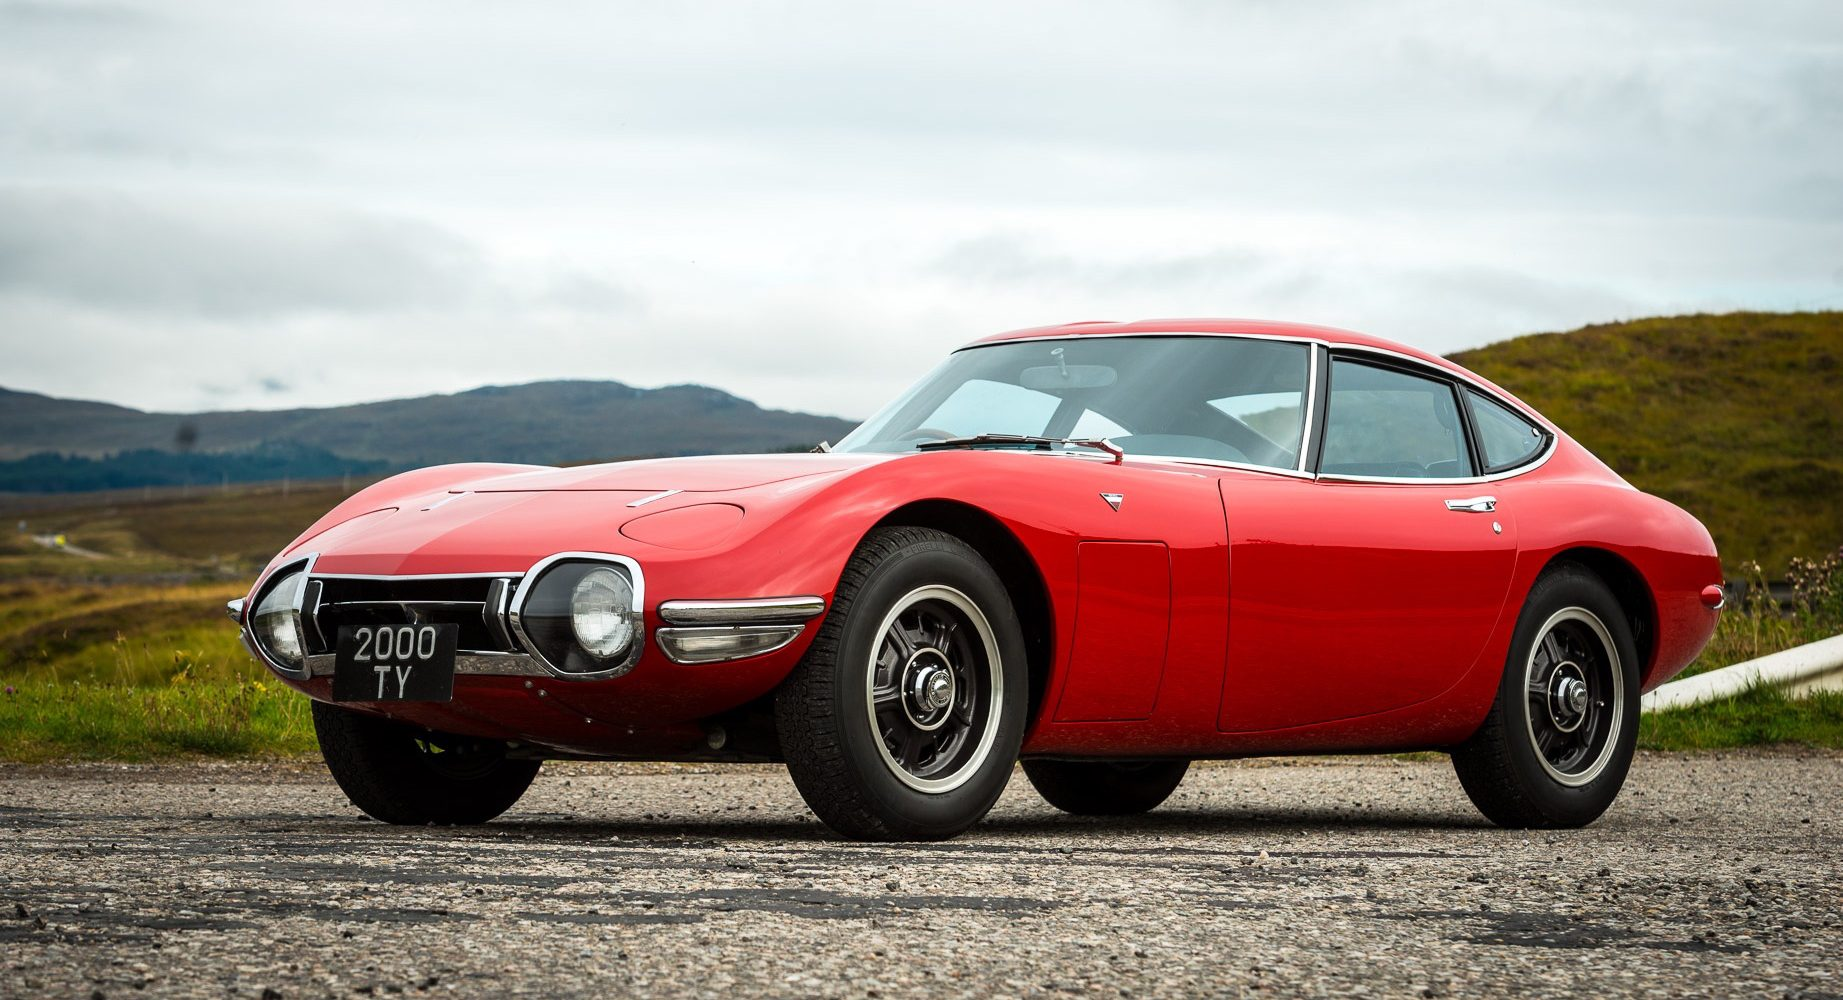 Jaw-Dropping Toyota 2000GT Restoration Uncovers Car's Mysterious